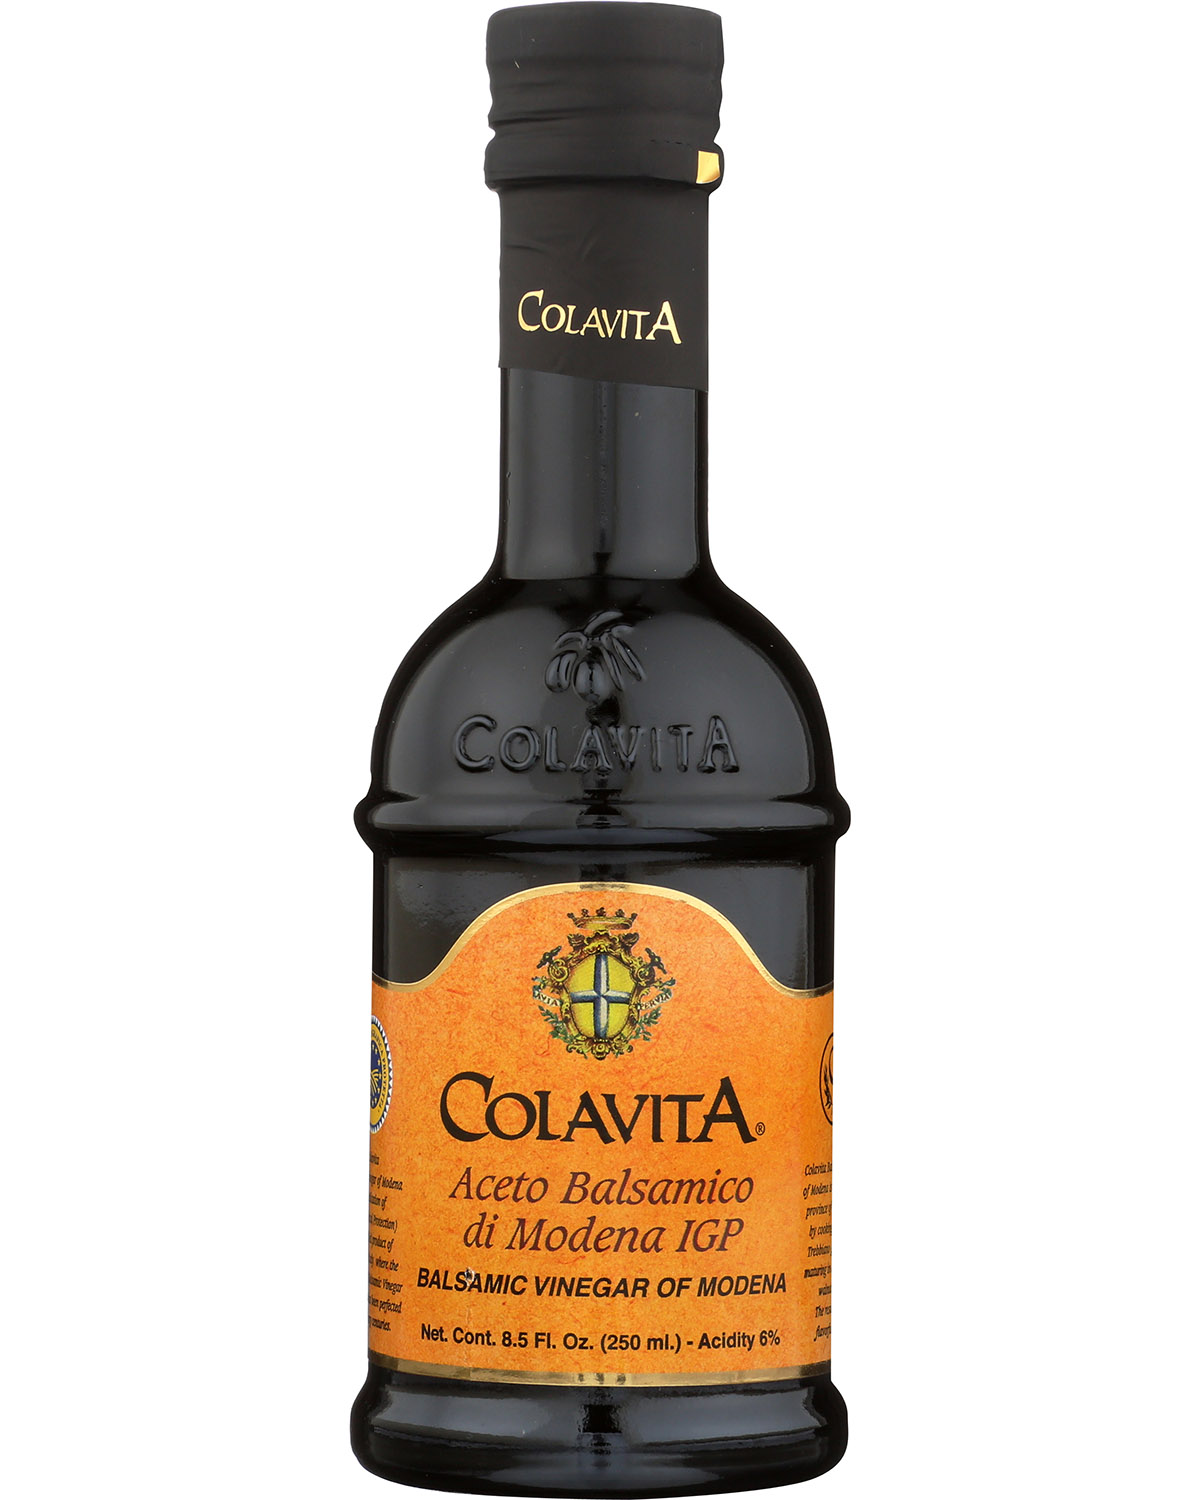 Colavita Balsamic Vinegar of Modena IGP